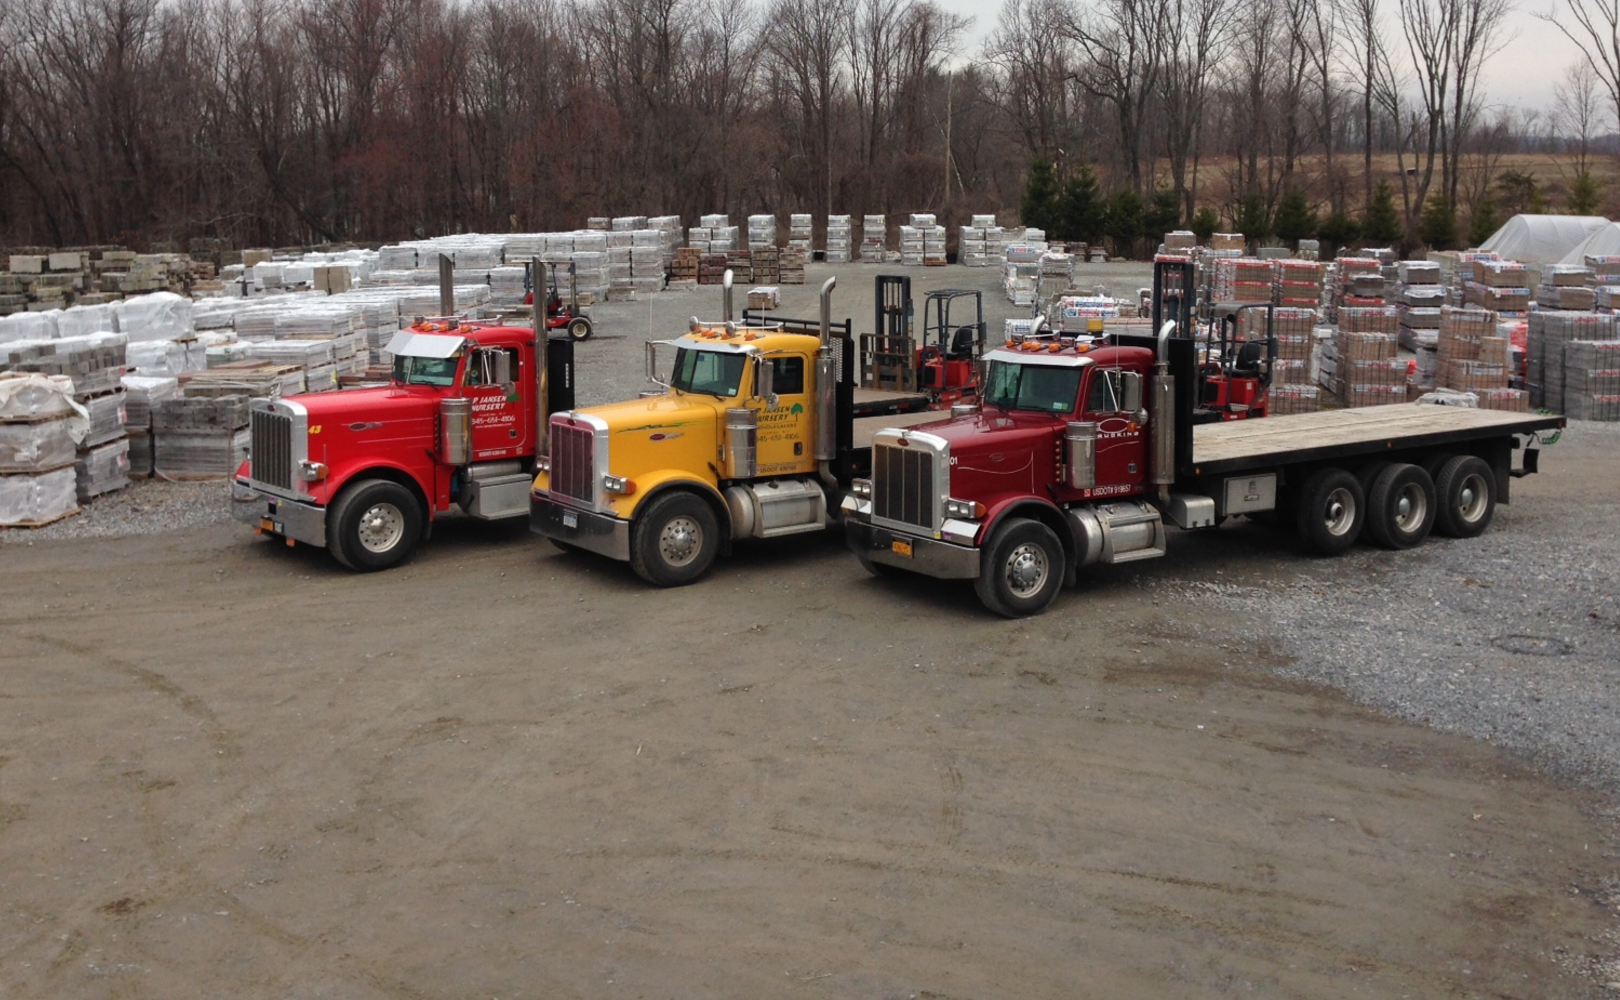 Best stone supply company in Orange County, NY